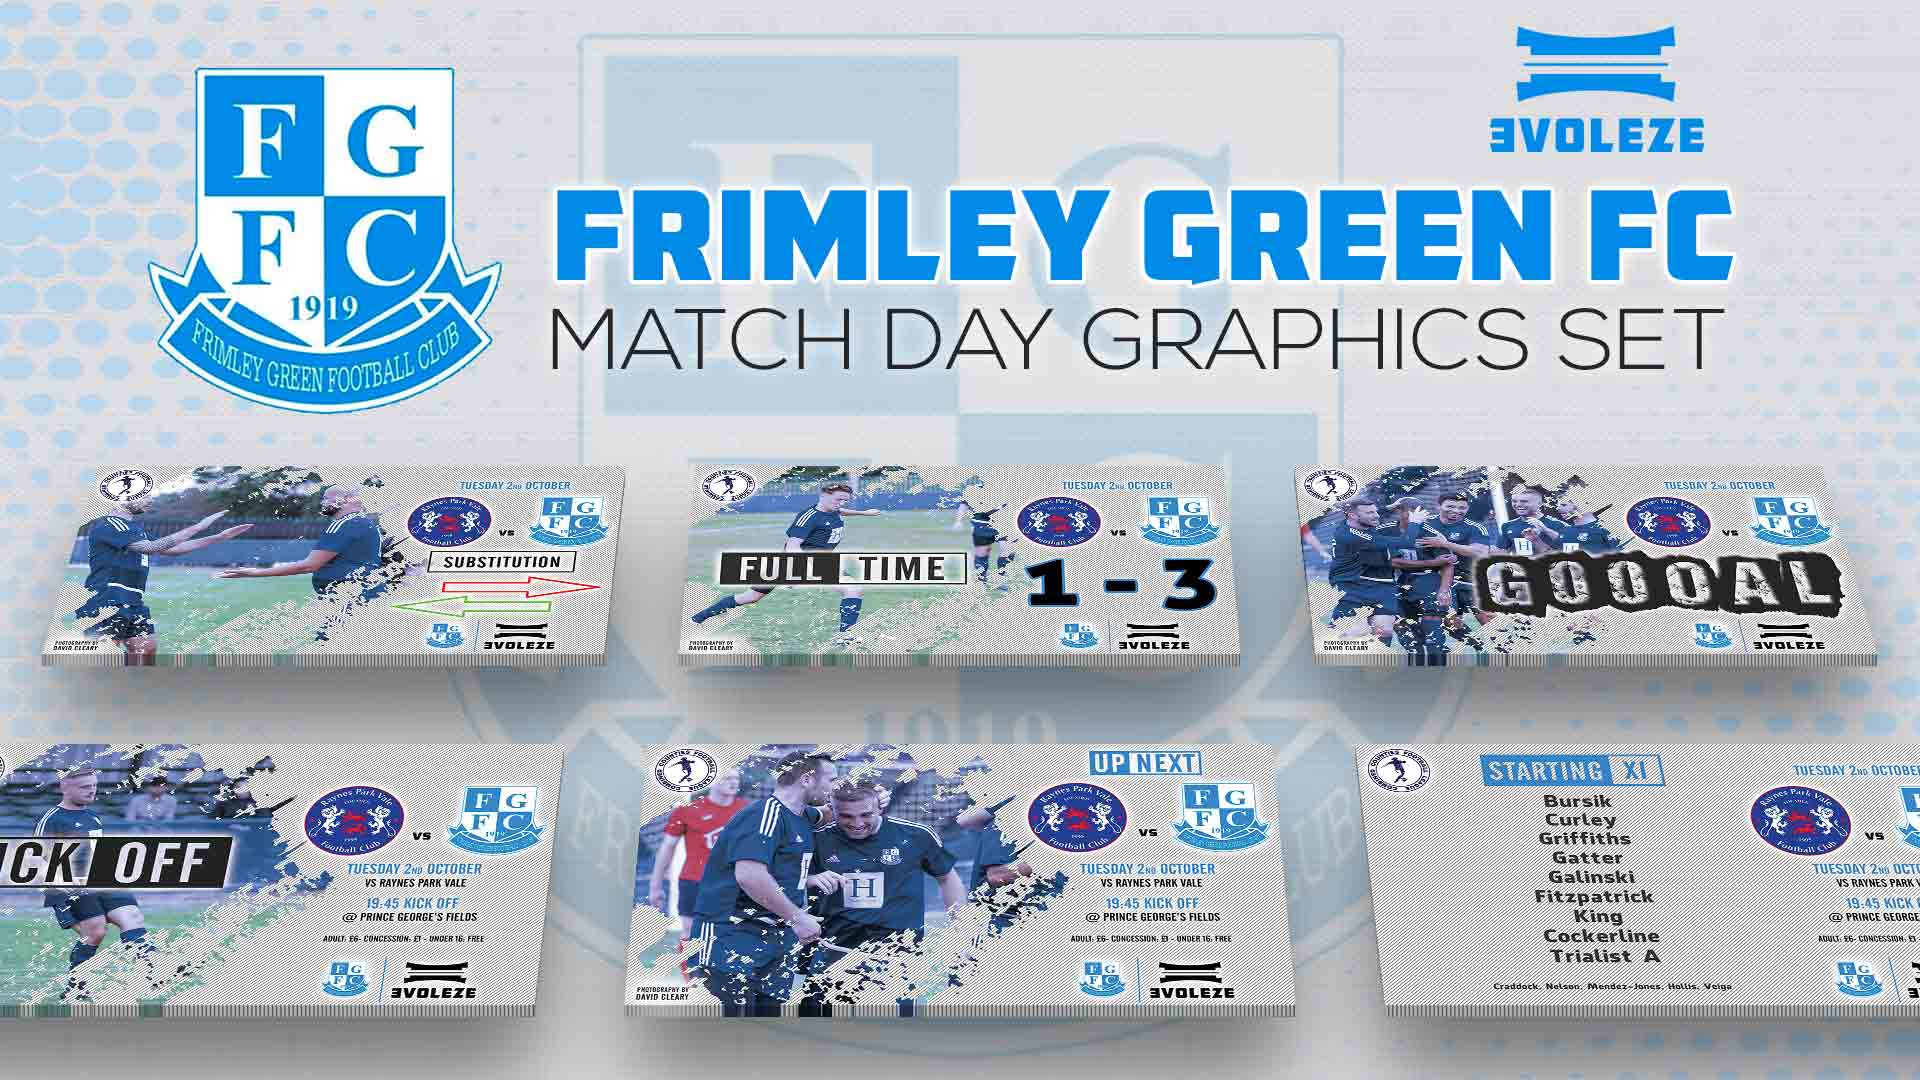 frimley green fc match day graphics set